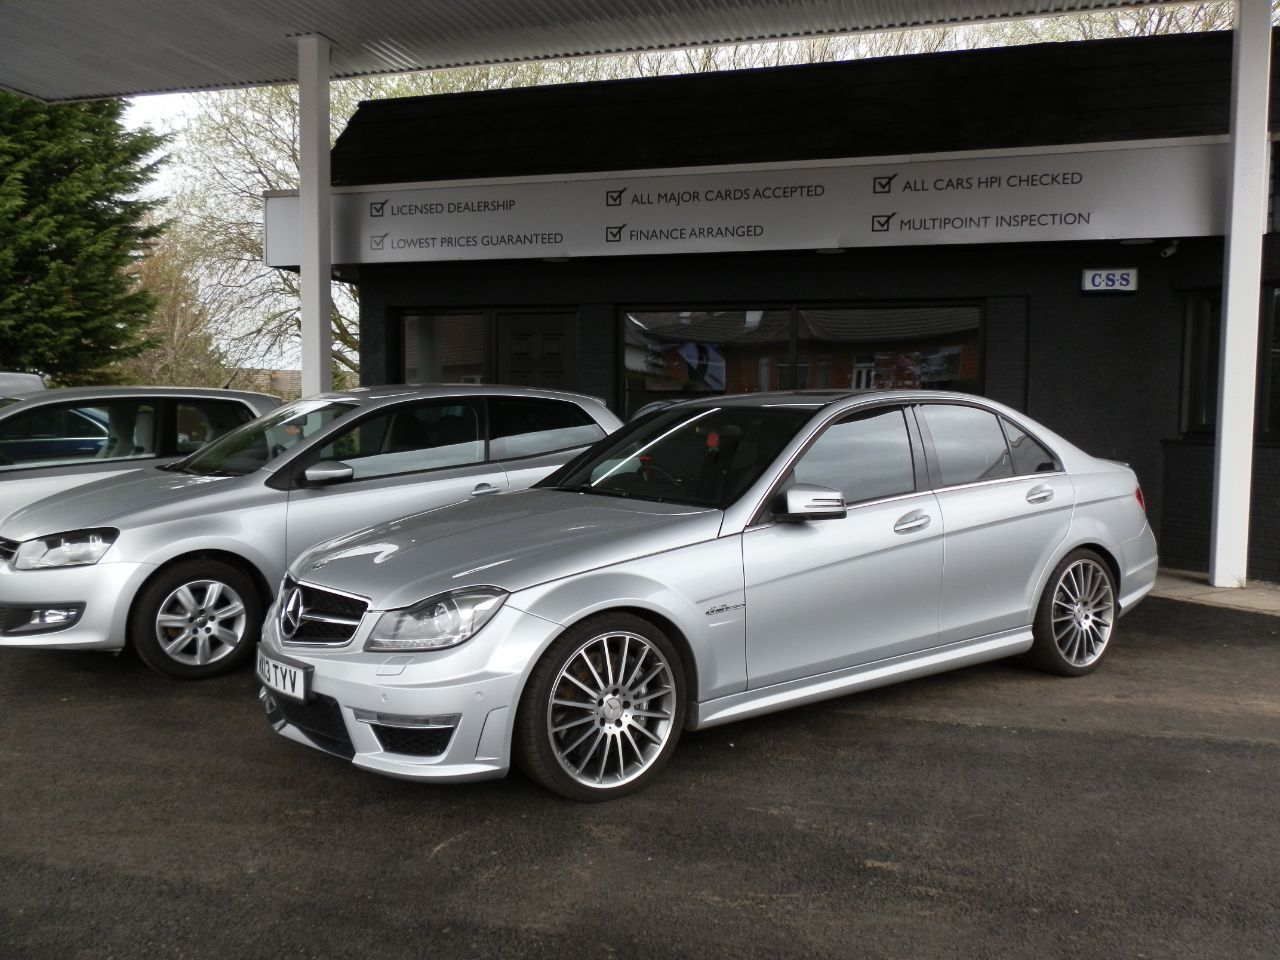 Mercedes-Benz C Class 6.2 C63 AMG 7-MCT, 451BHP Saloon Petrol silver